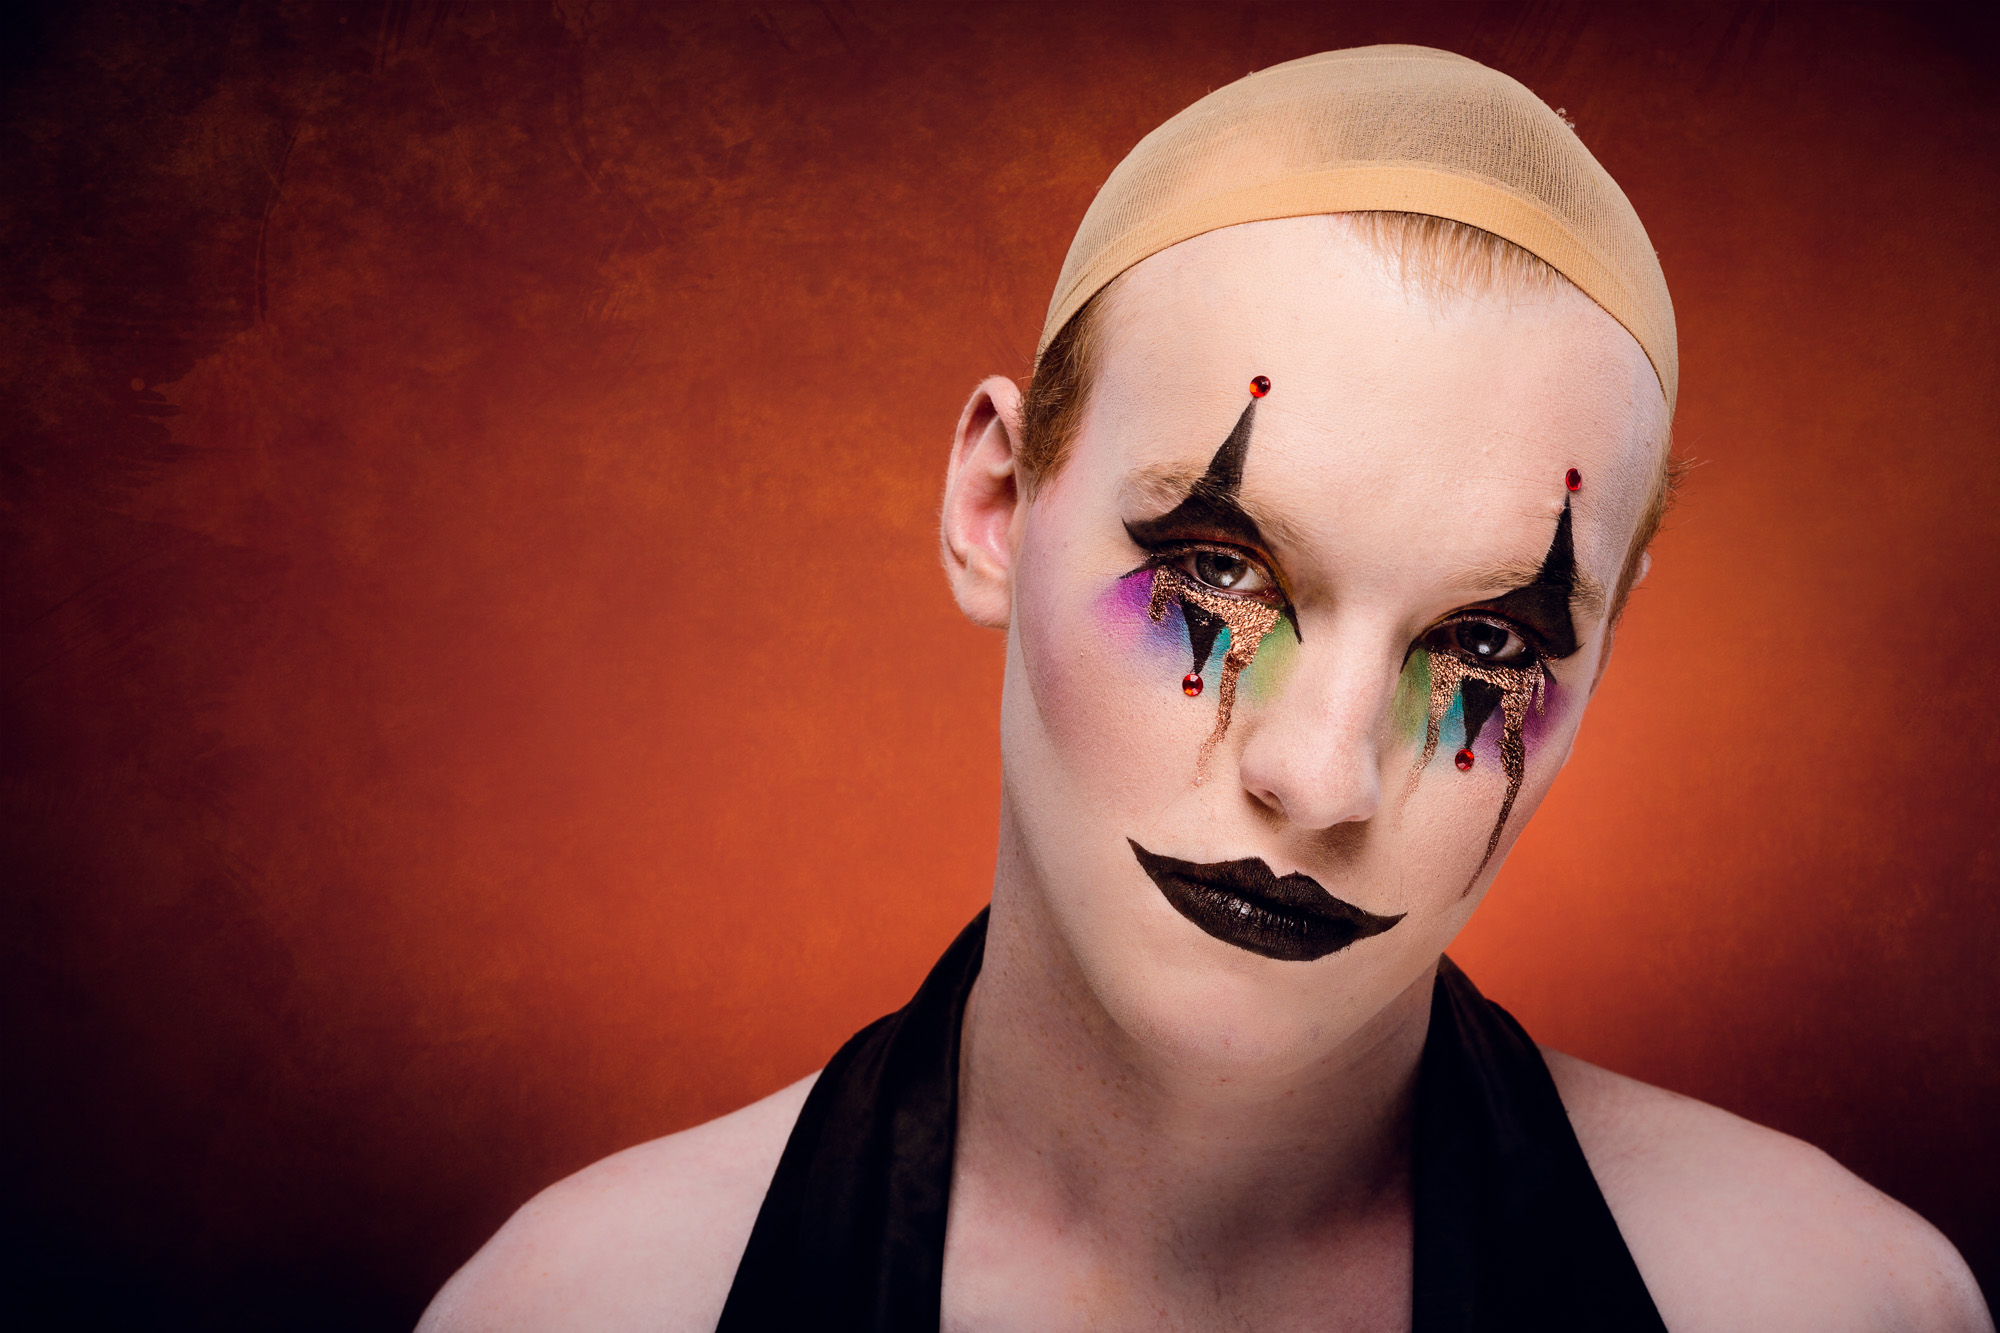 The clown, so happy for others.  Shortlisted image for the ACT Awards.